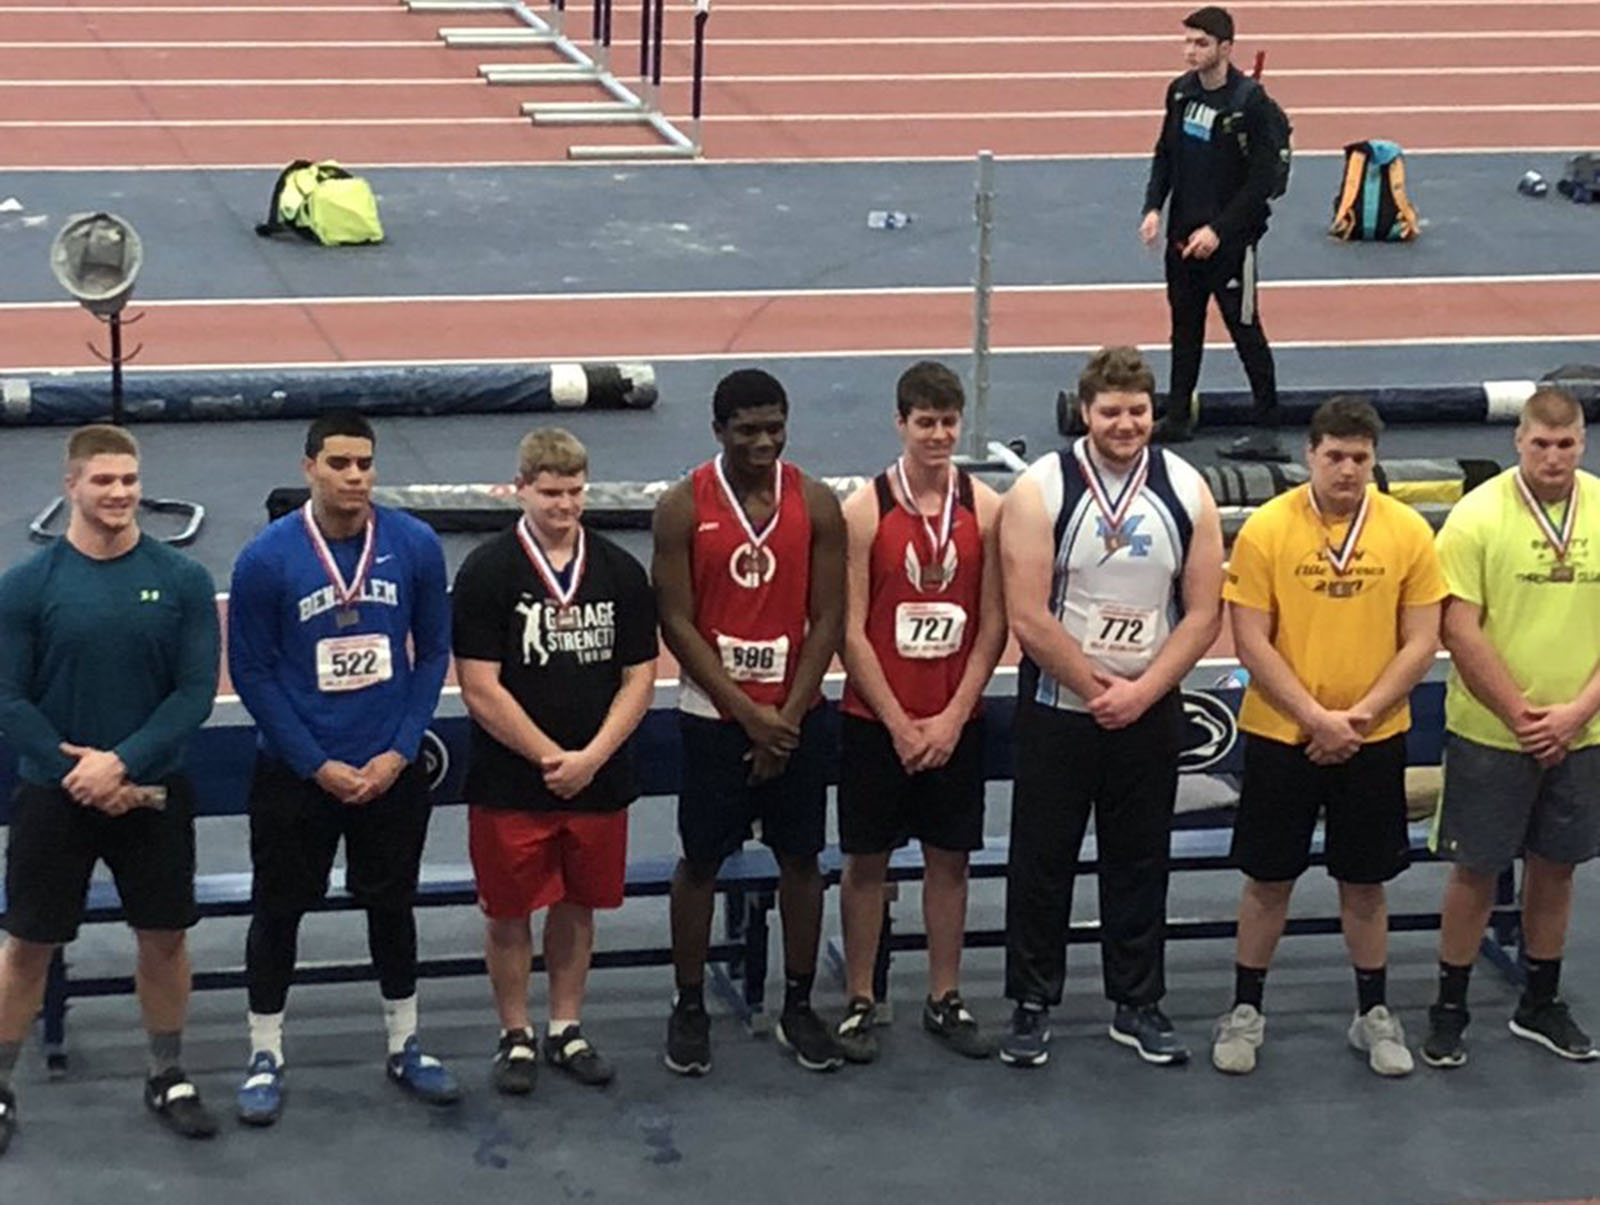 Winter Track: Athletes Put Together Top Performances at PTFCA Indoor State Championships